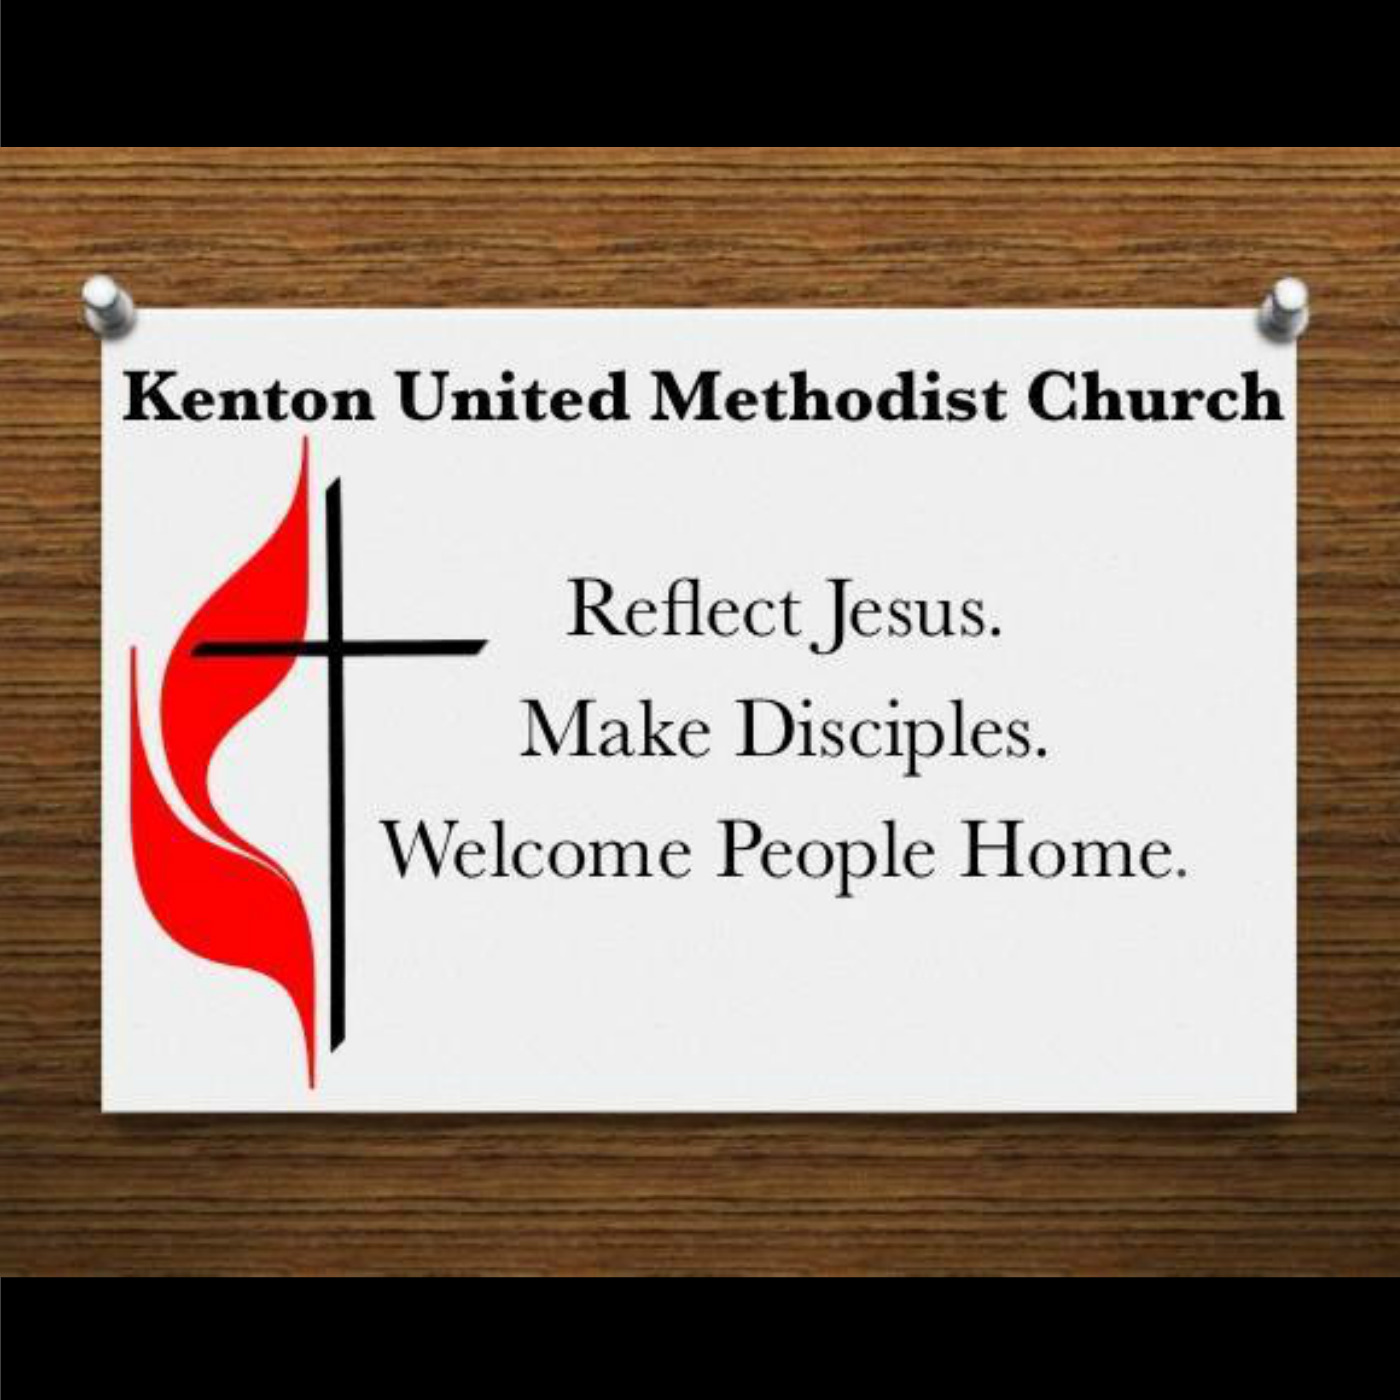 Kenton United Methodist Church